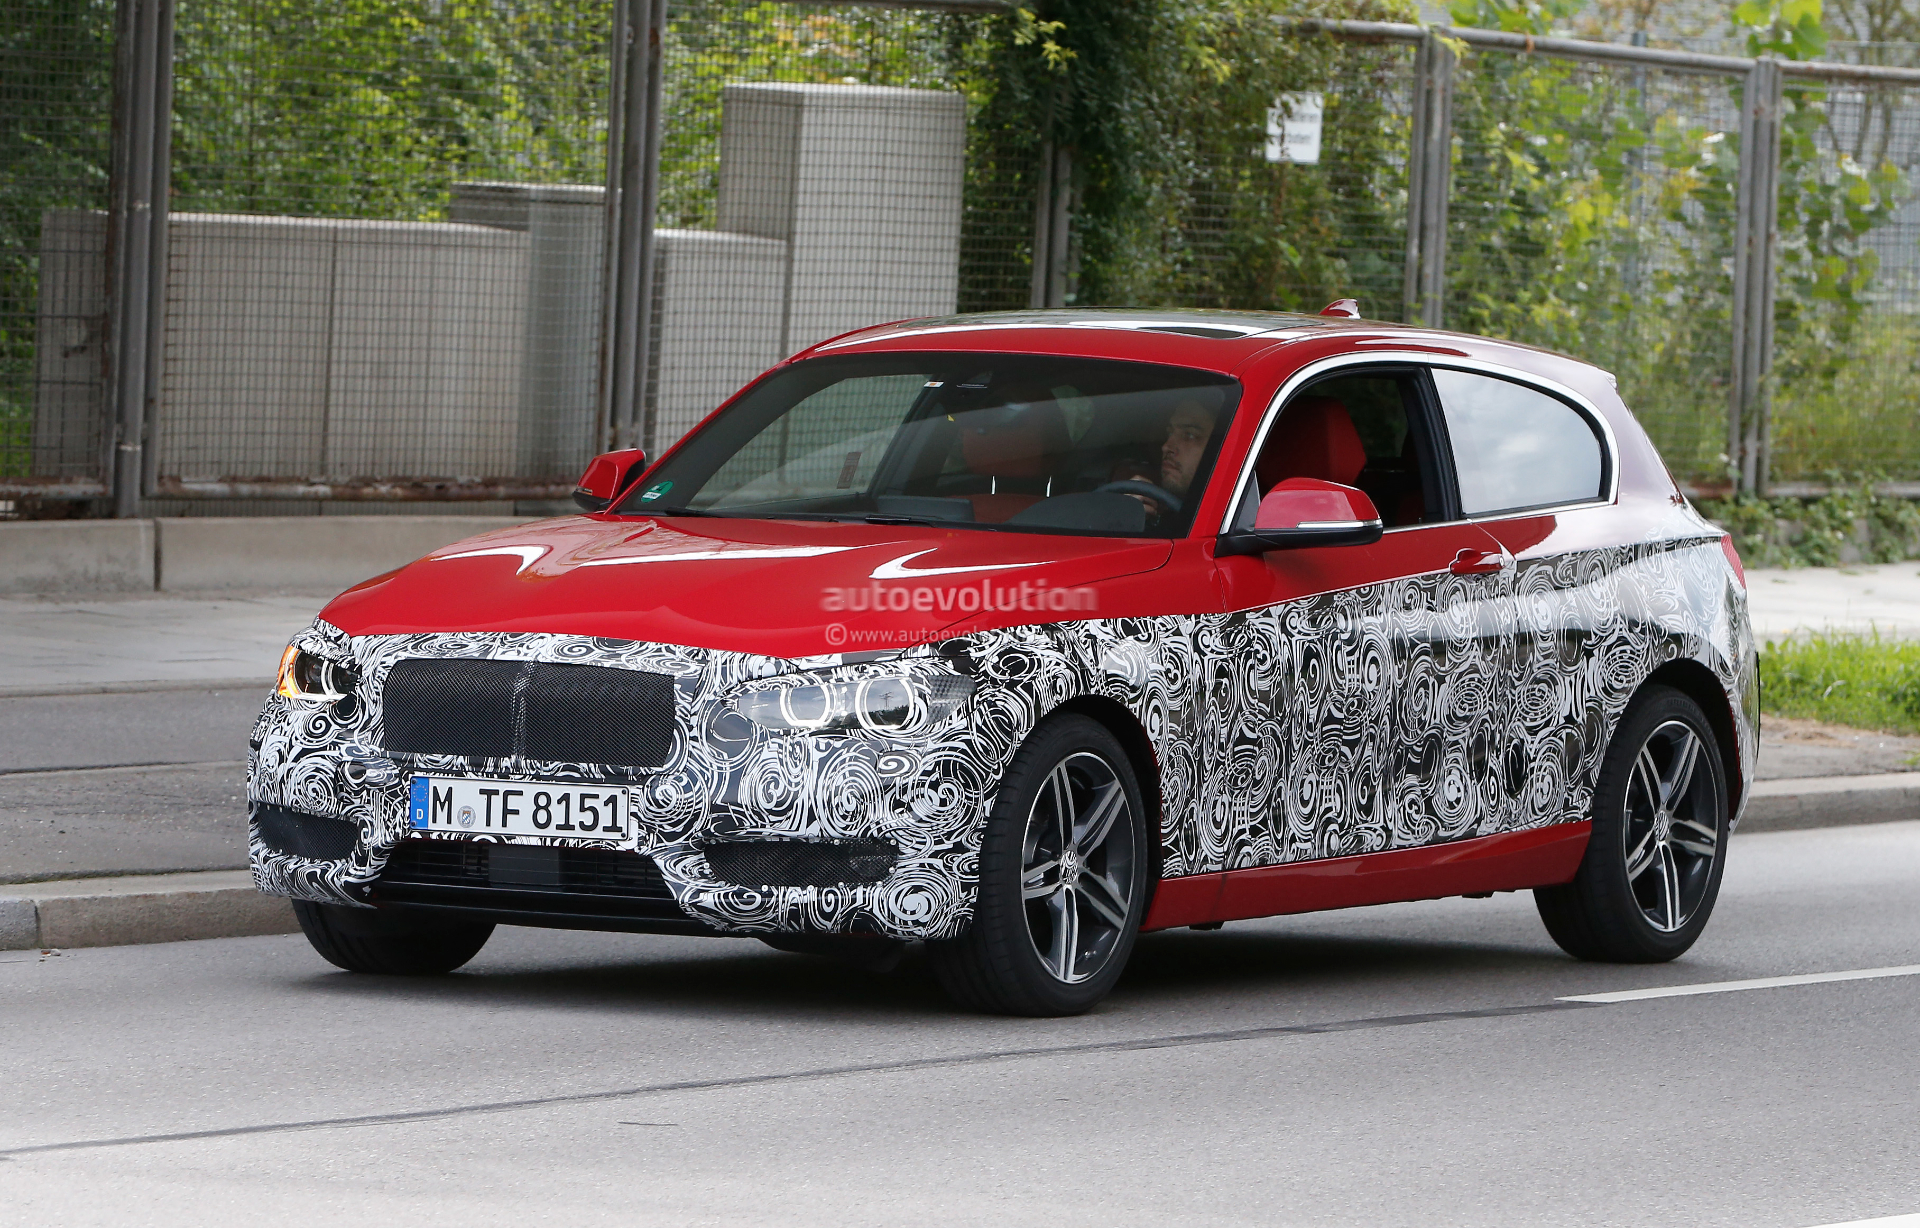 facelift bmw 1 series inches closer to production autoevolution. Black Bedroom Furniture Sets. Home Design Ideas